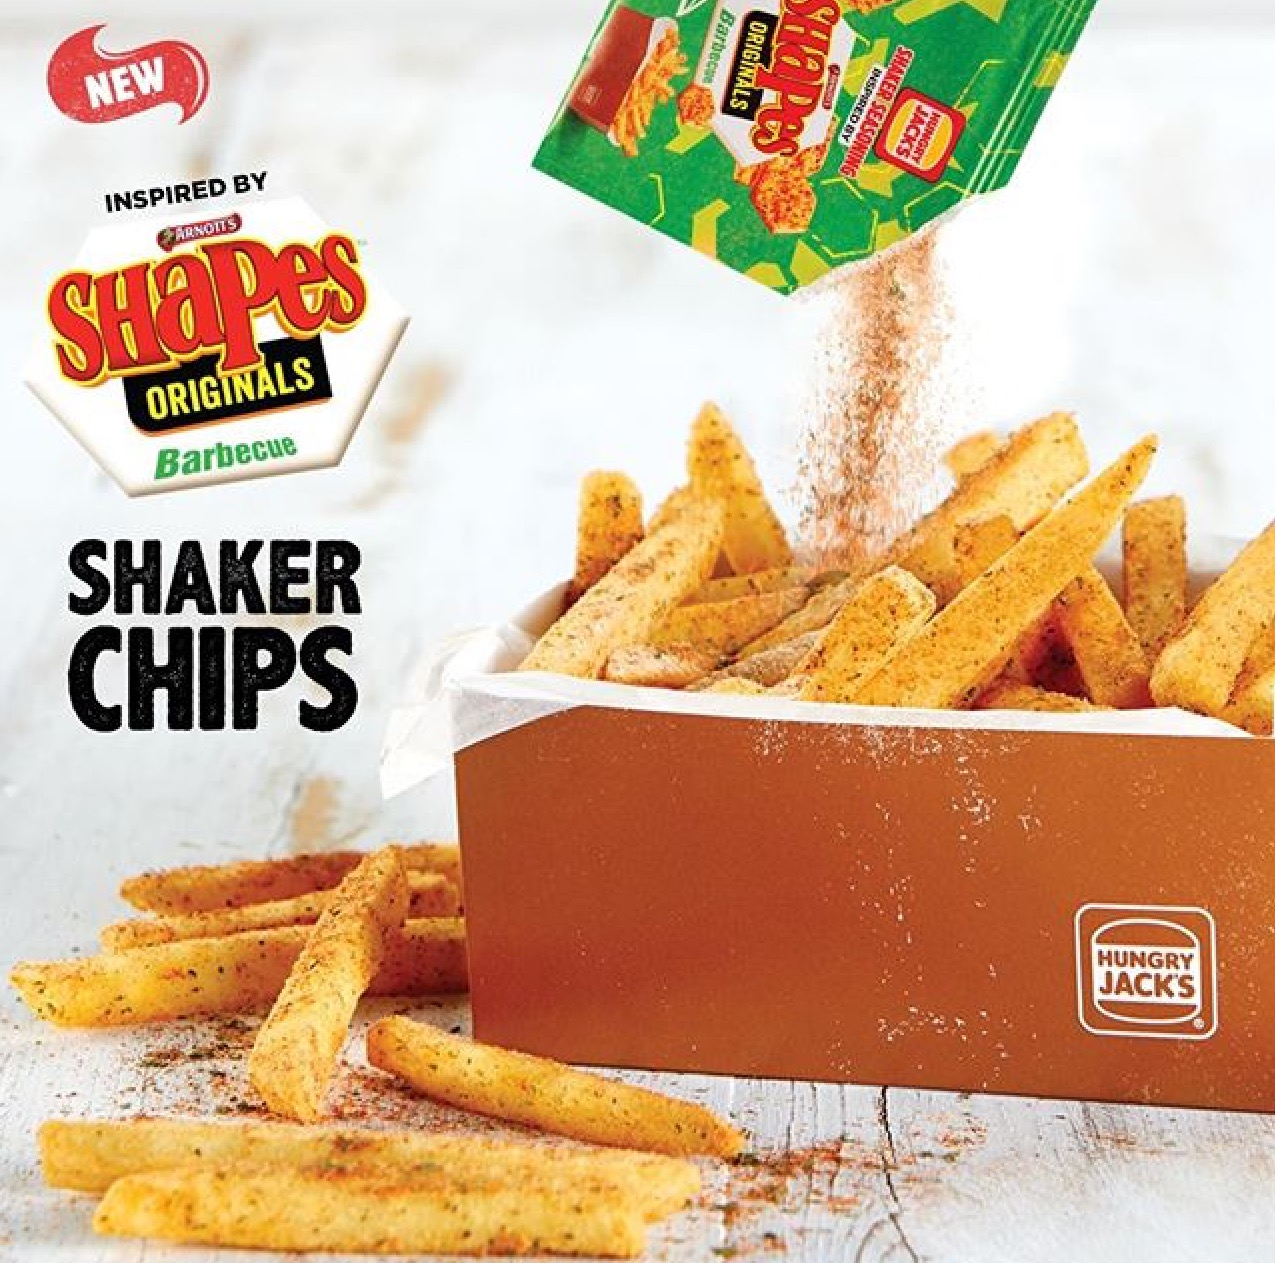 Hungry Jack's Shaker Chips